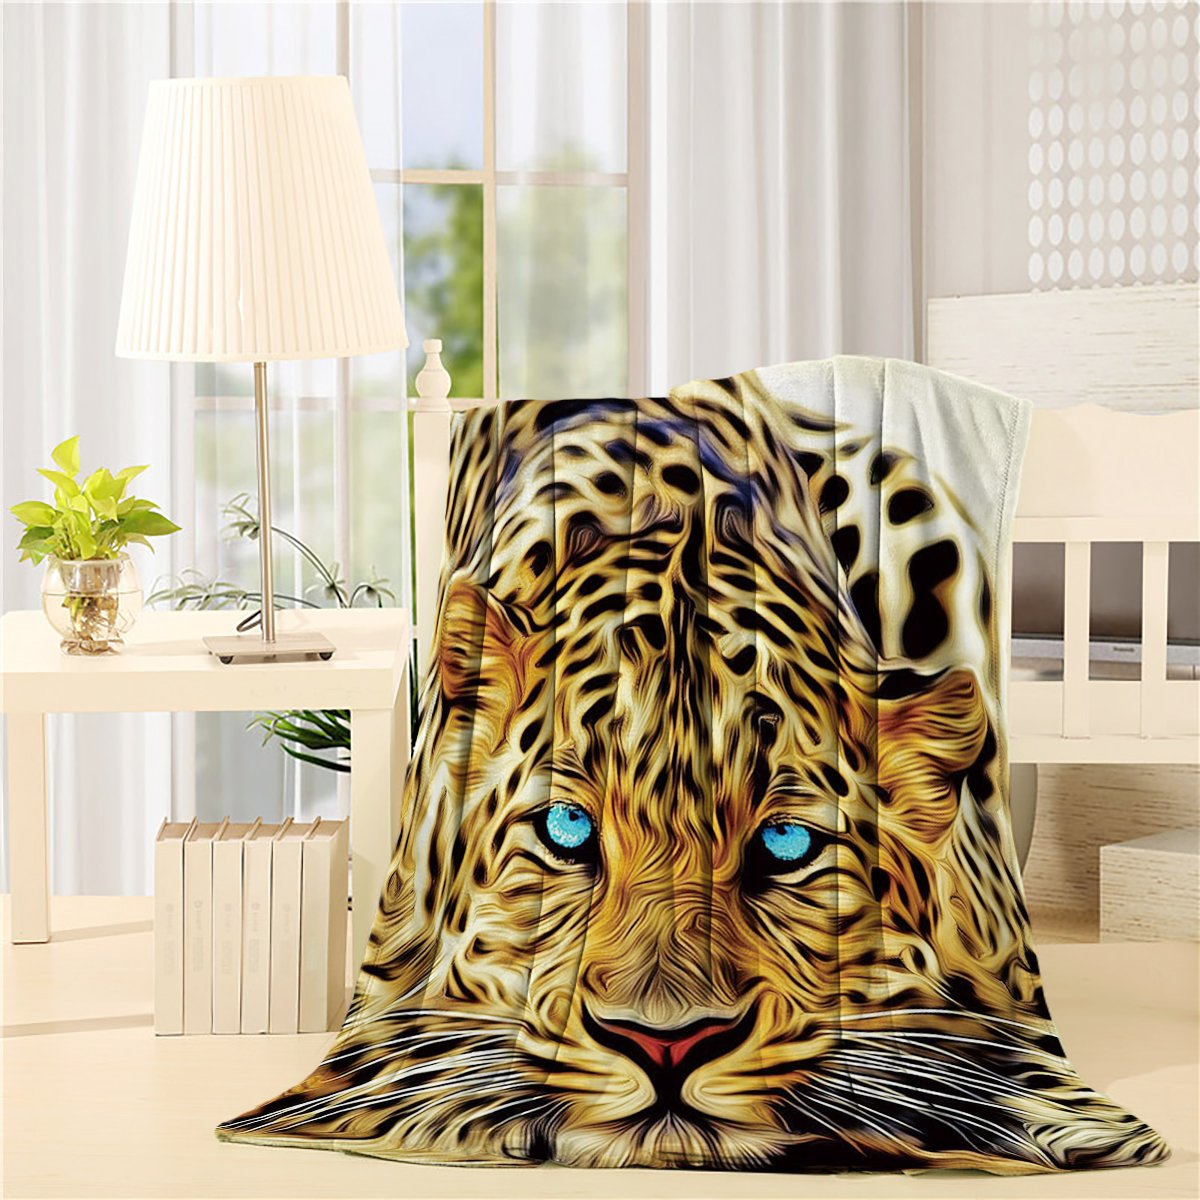 Flannel Fleece Bed Blanket 60 x 80 inch Animal Throw Blanket Lightweight Cozy Plush Blanket for Bedroom Living Rooms Sofa Couch - Special Effect Leopard Big Cat Blue Eyes Wild Animal